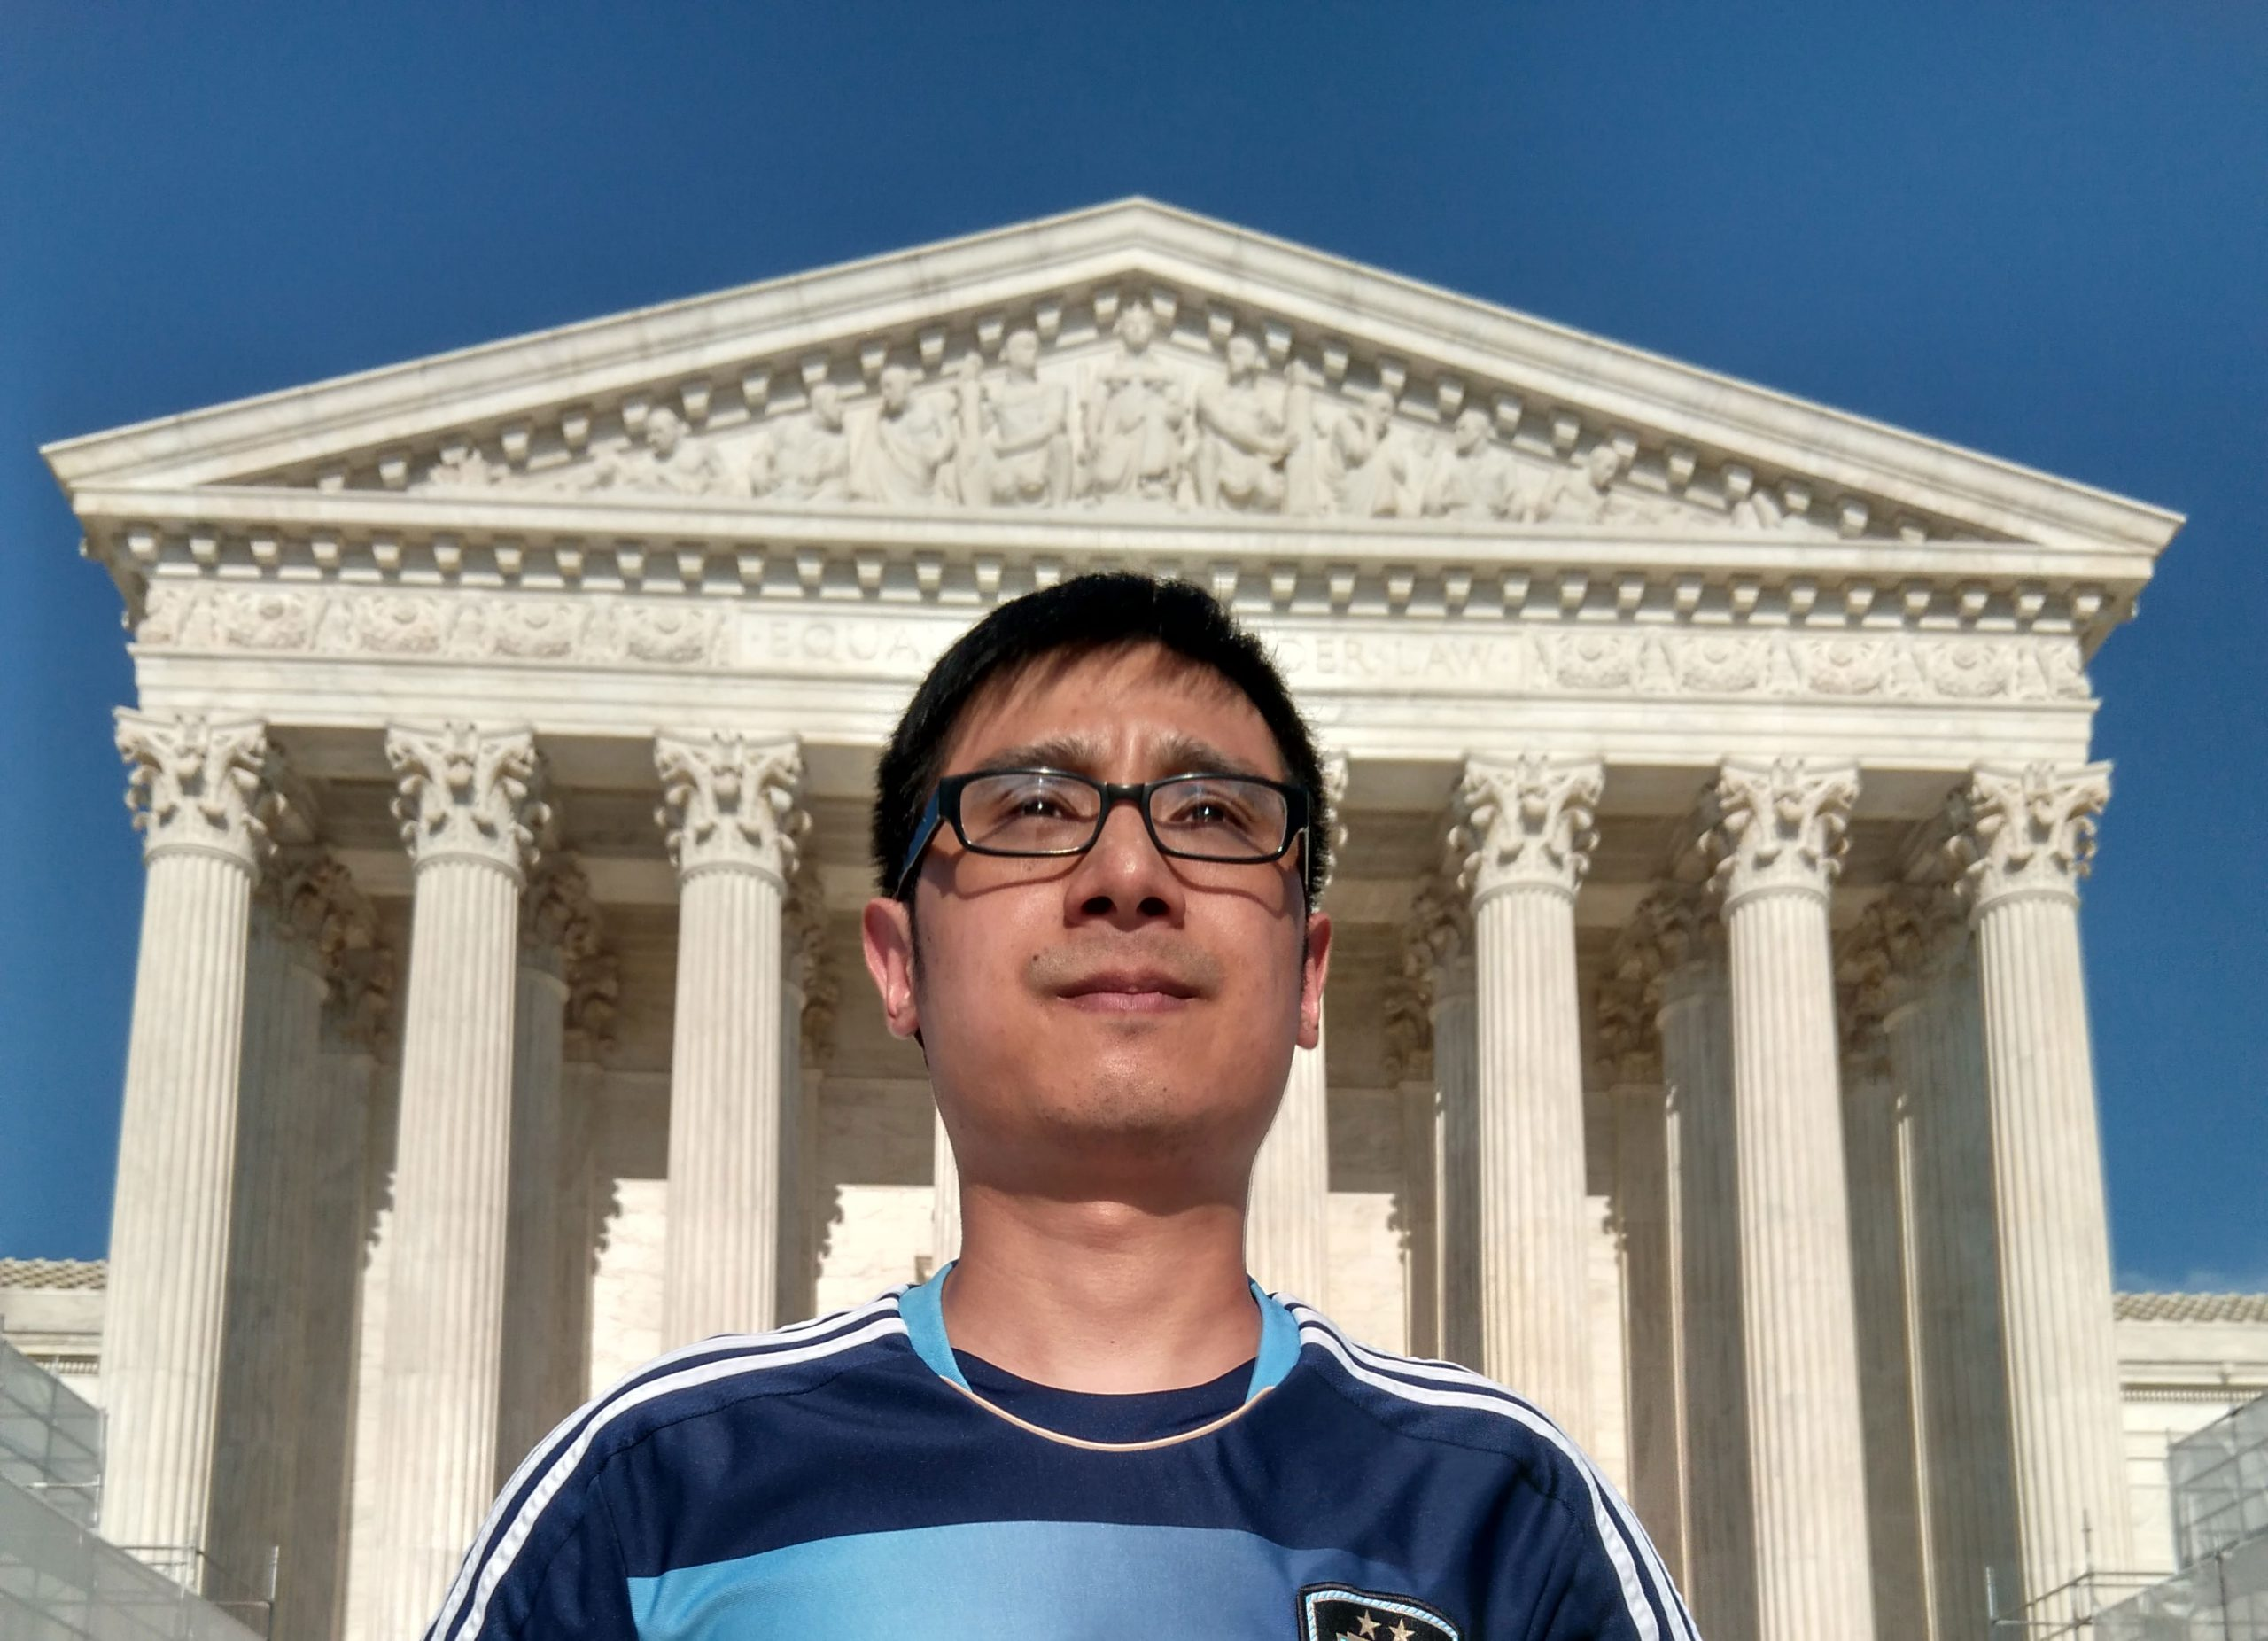 Jun in front of Supreme Court building